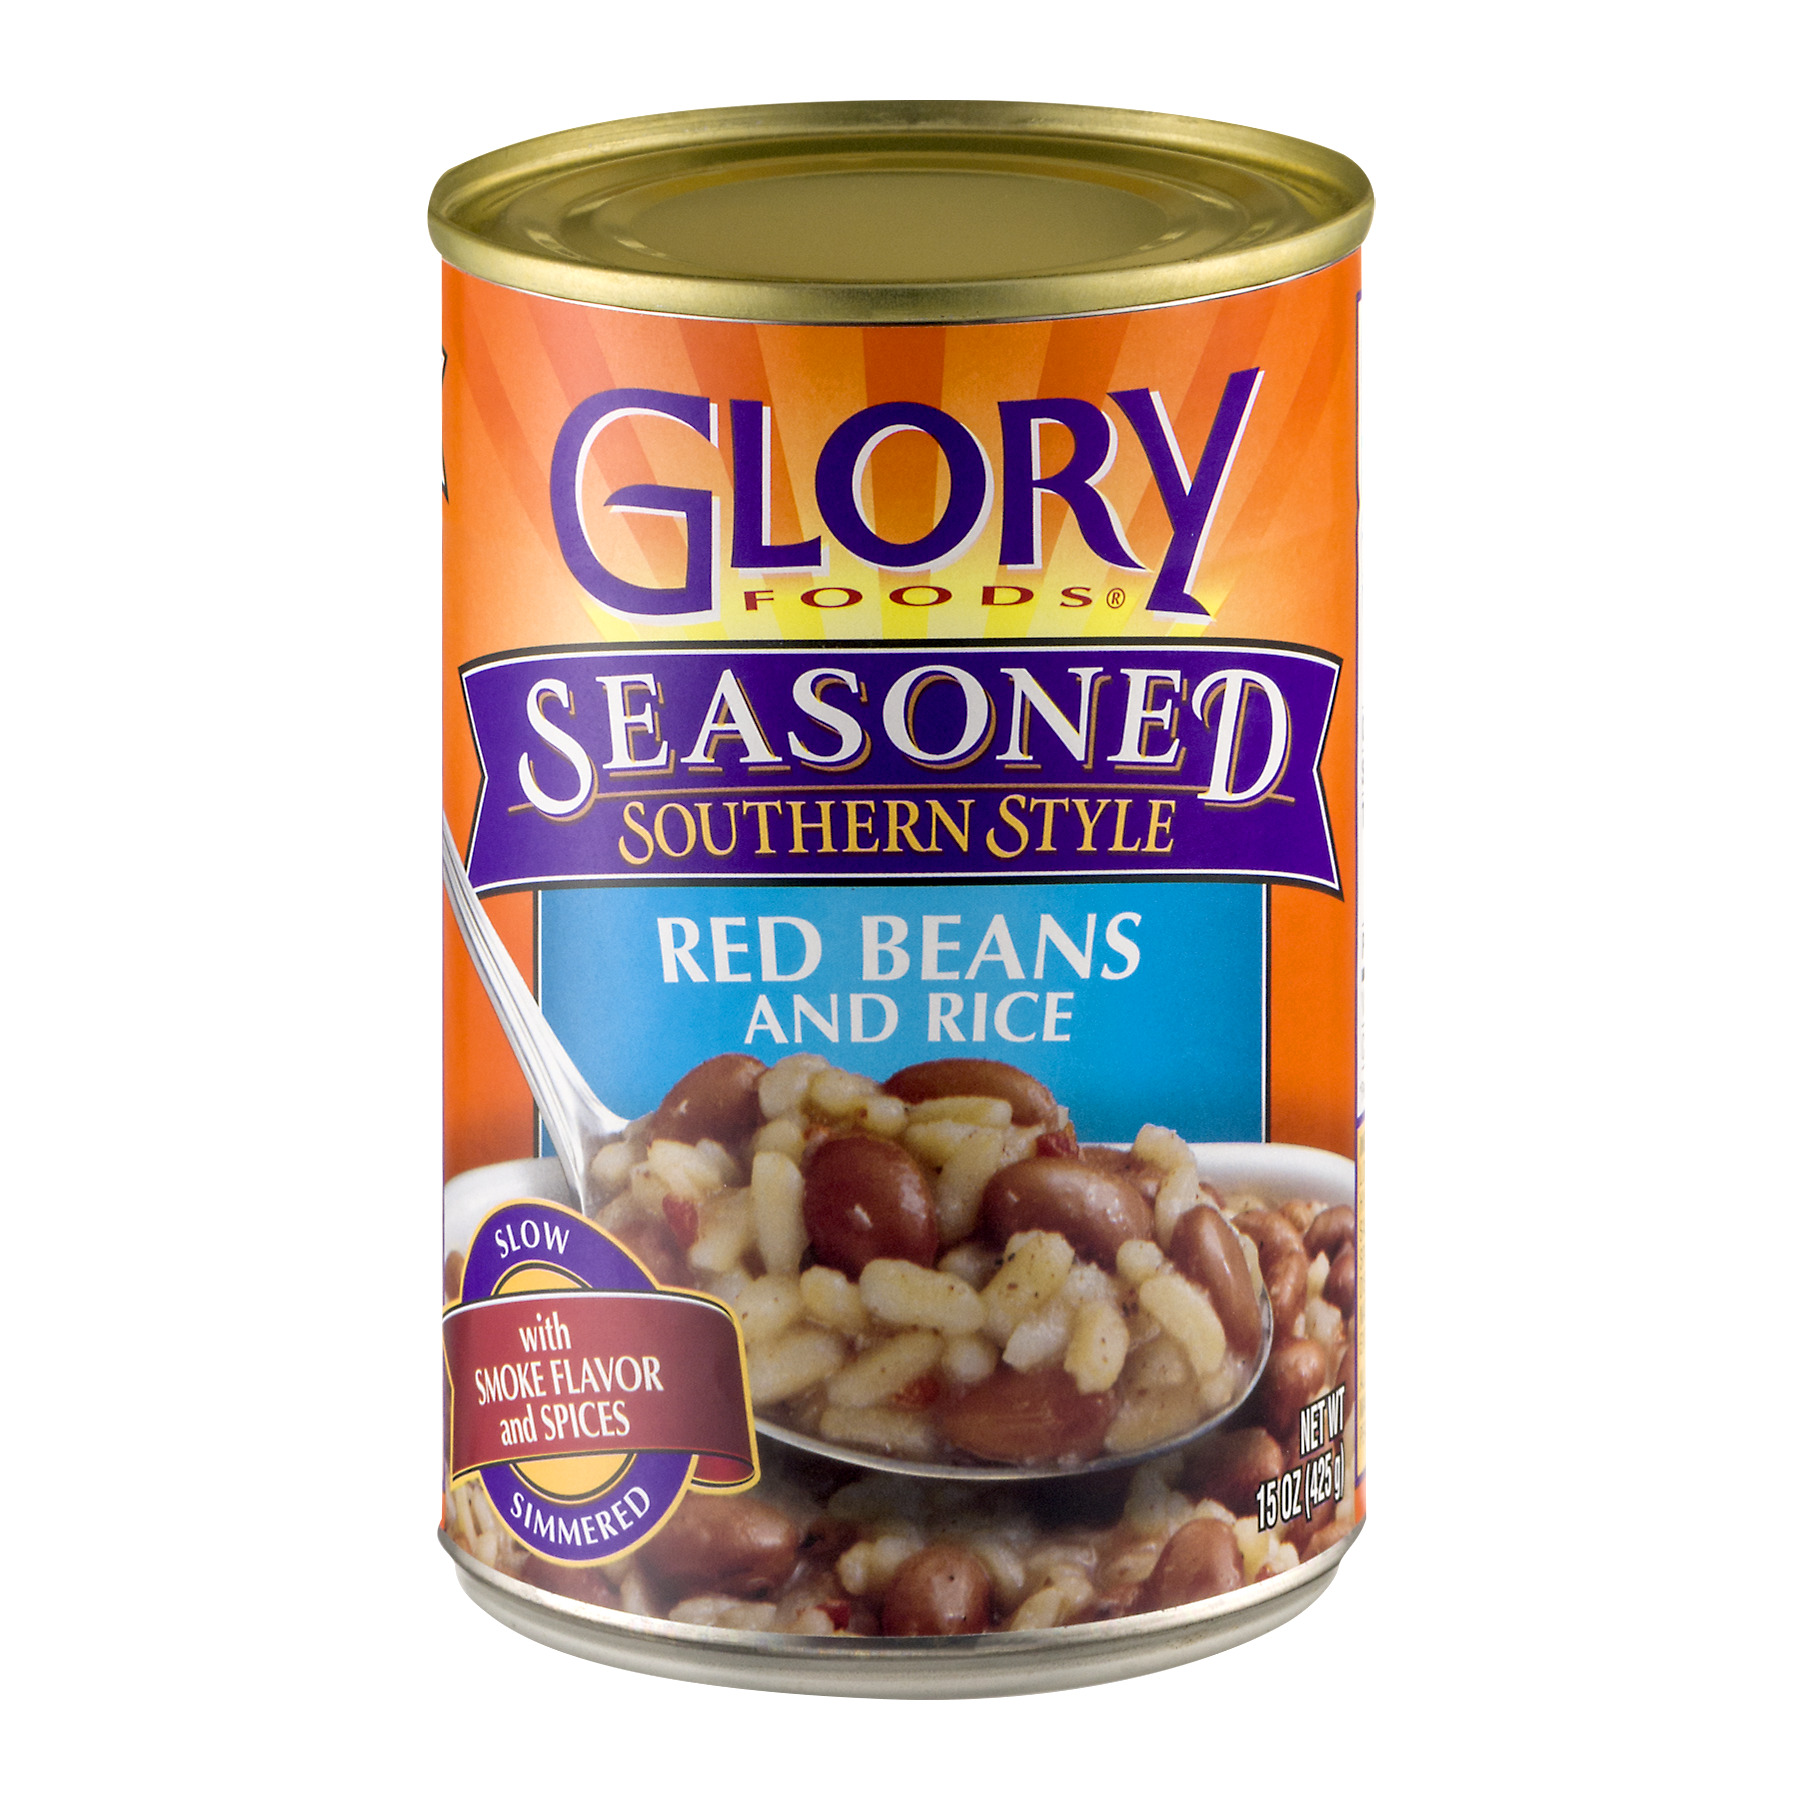 Glory Foods Seasoned Southern Style Red Beans And Rice, 15 Oz